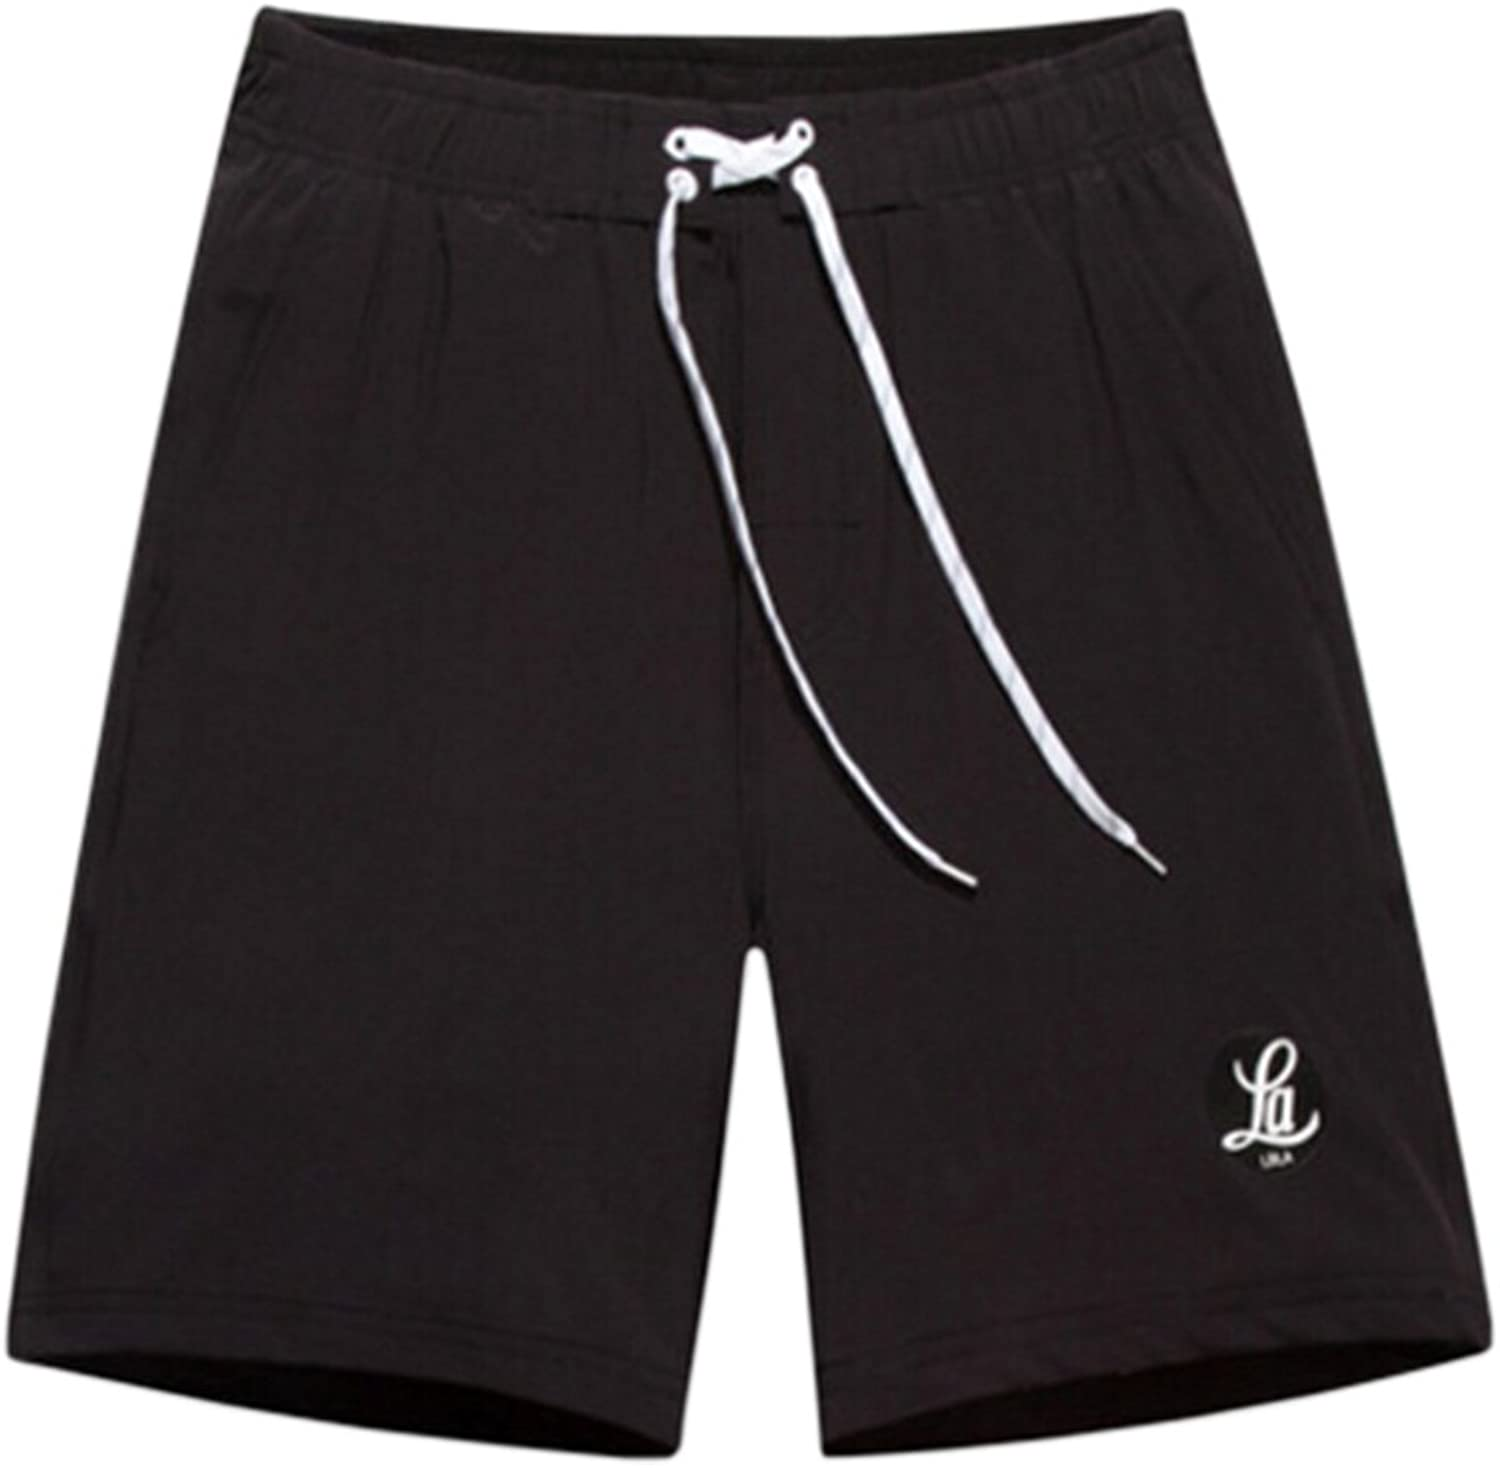 Men's Casual Shorts Beach Shorts QuickDry Sport Shorts Swim Trunk Black